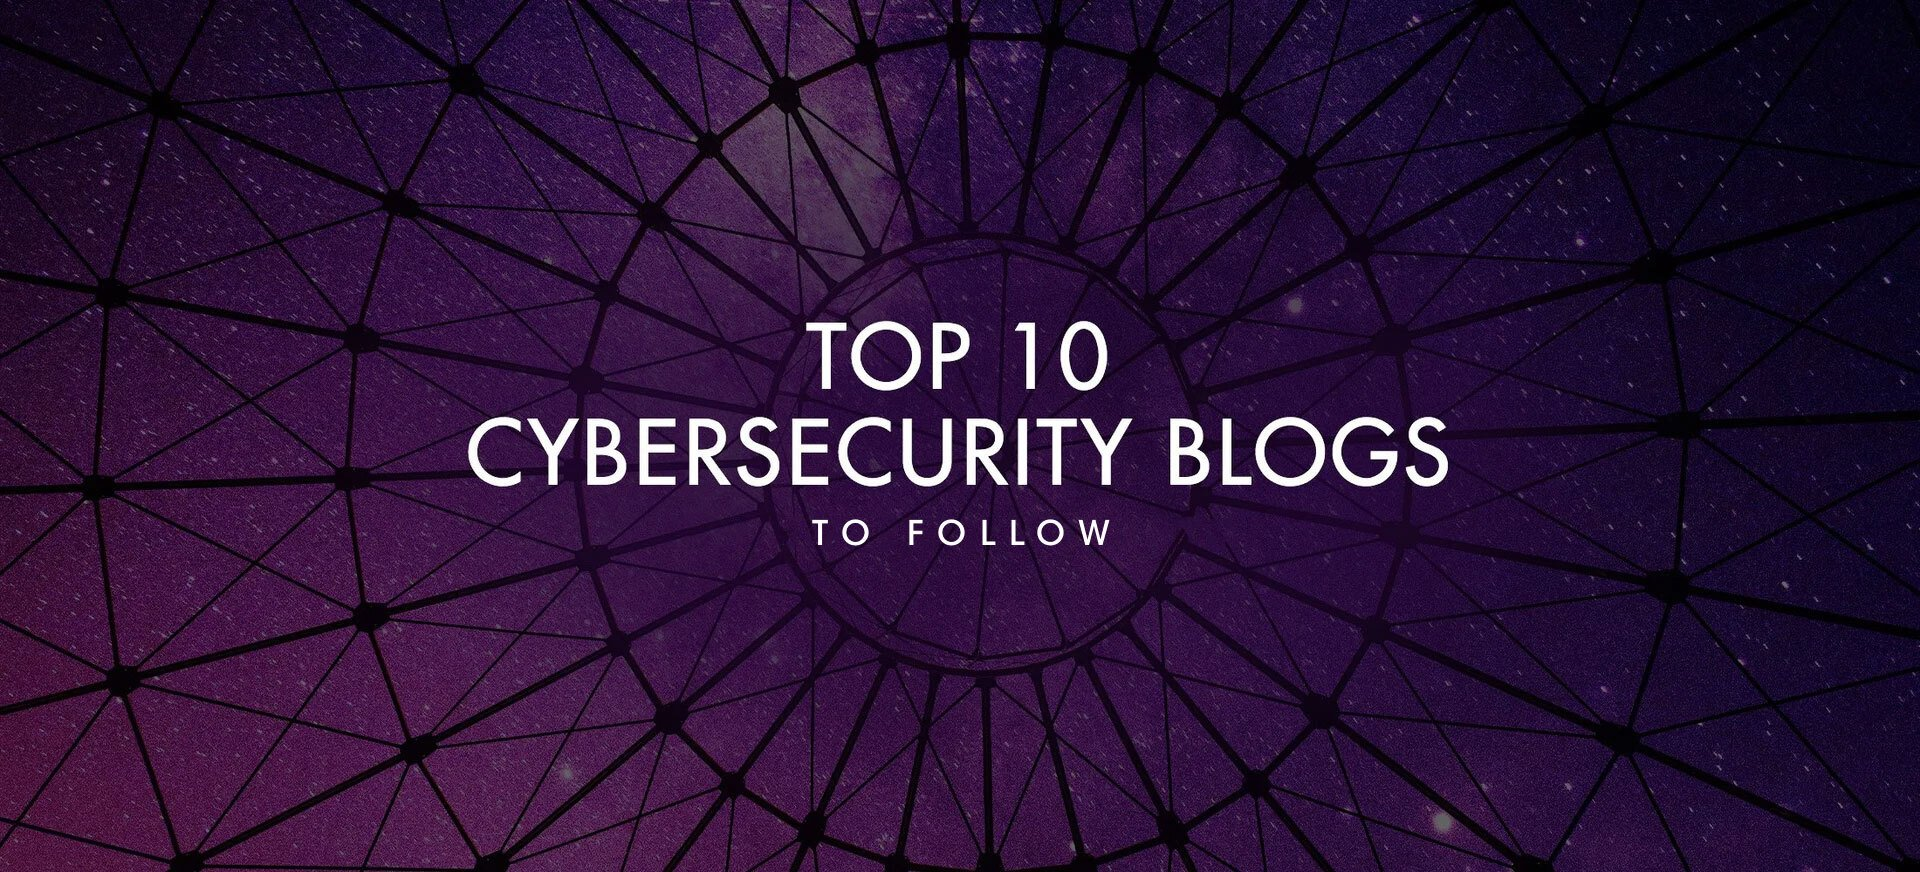 Top 10 Cybersecurity Blogs to Follow in 2020.